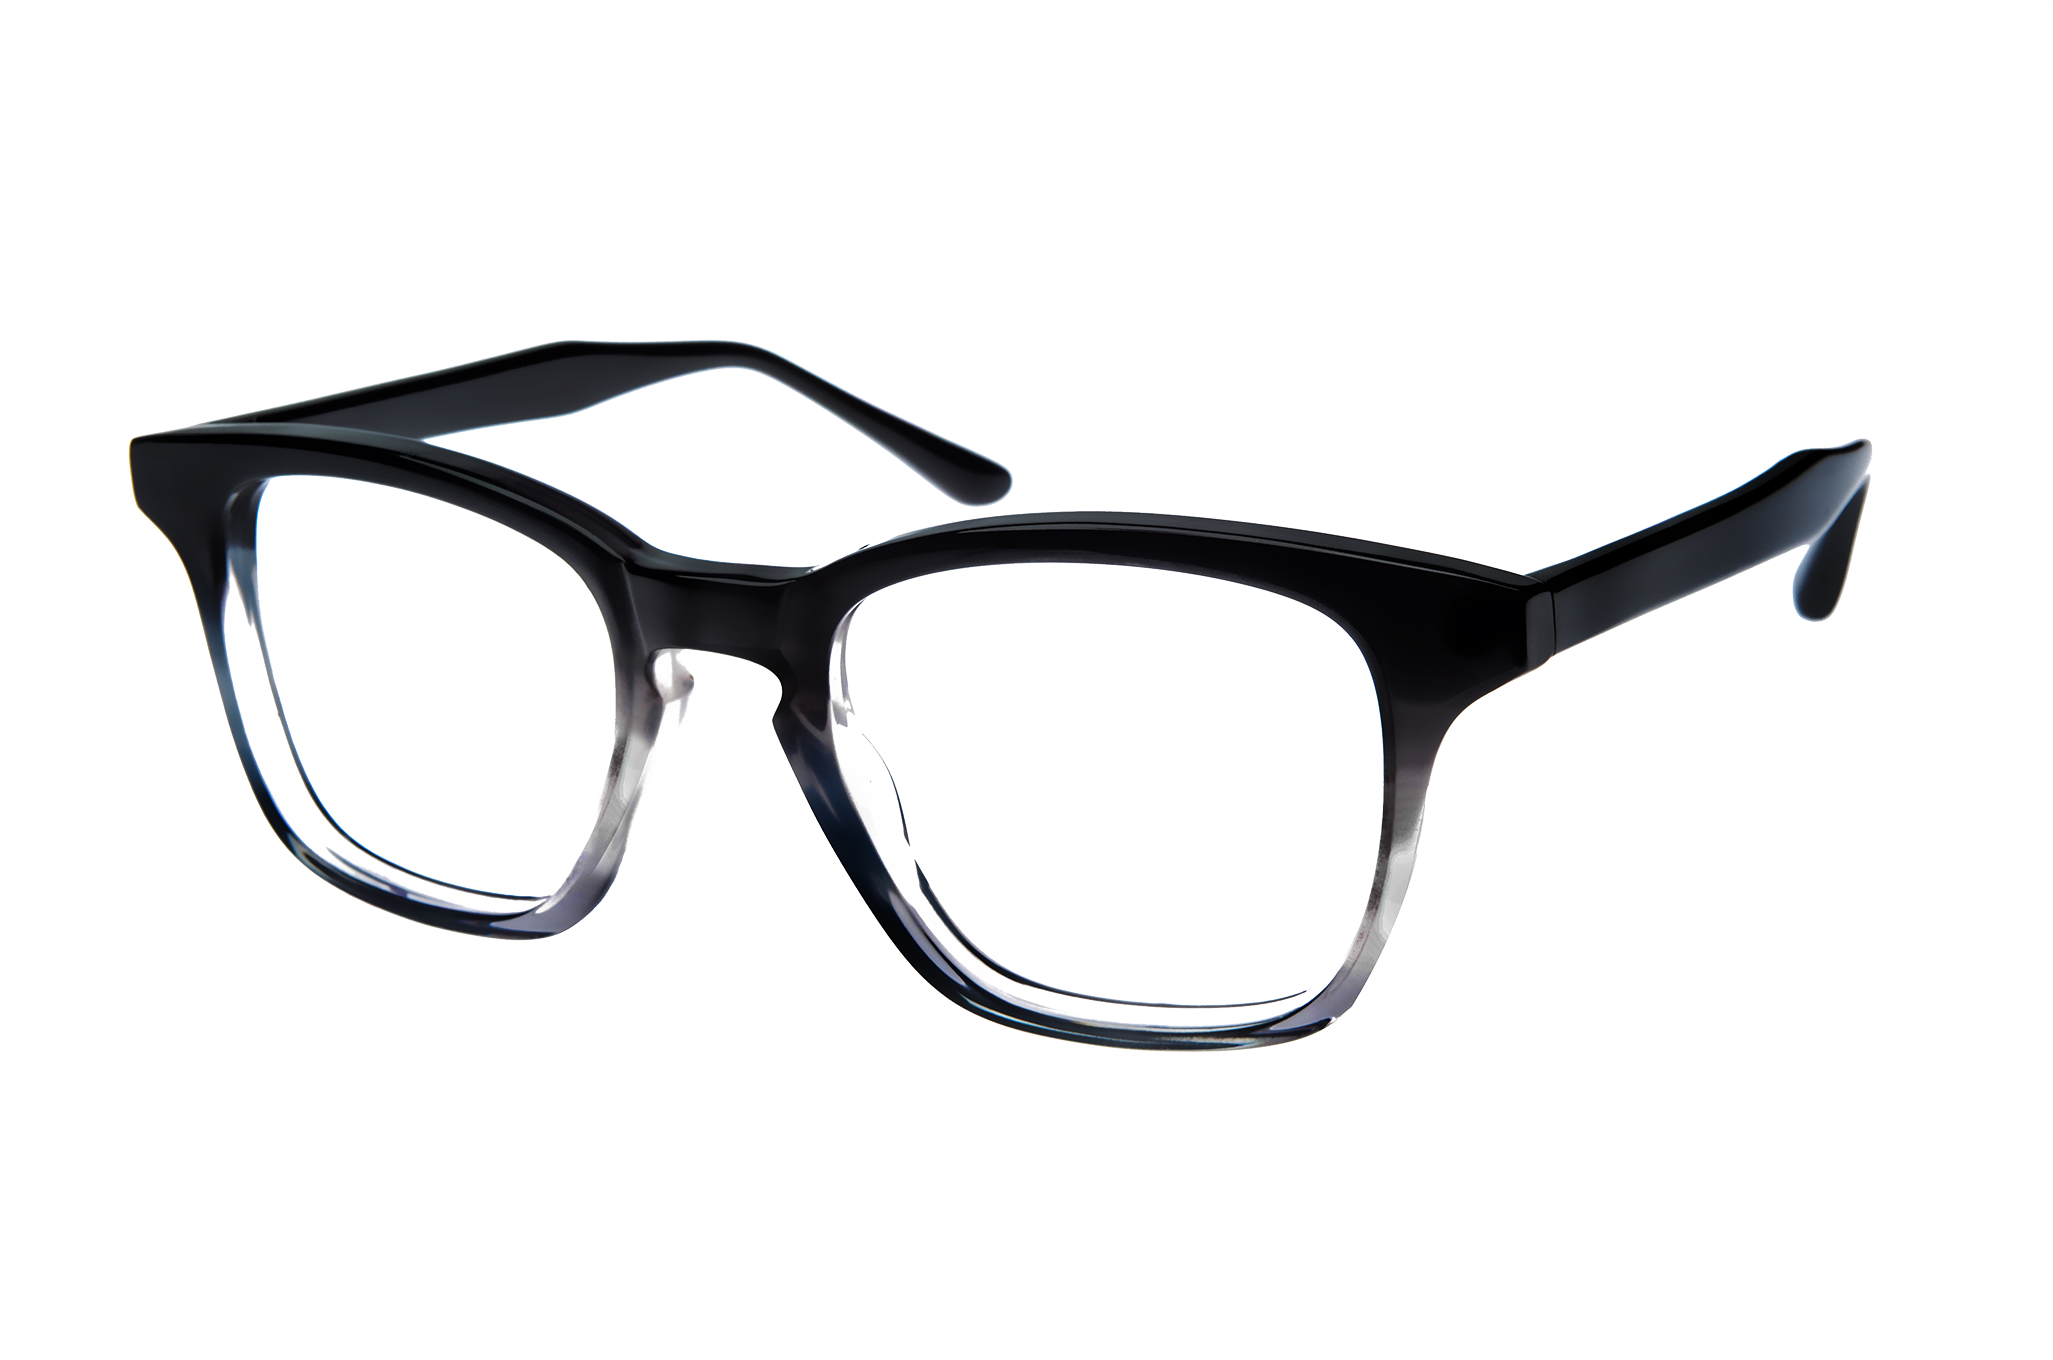 2017 glasses png. Icon web icons